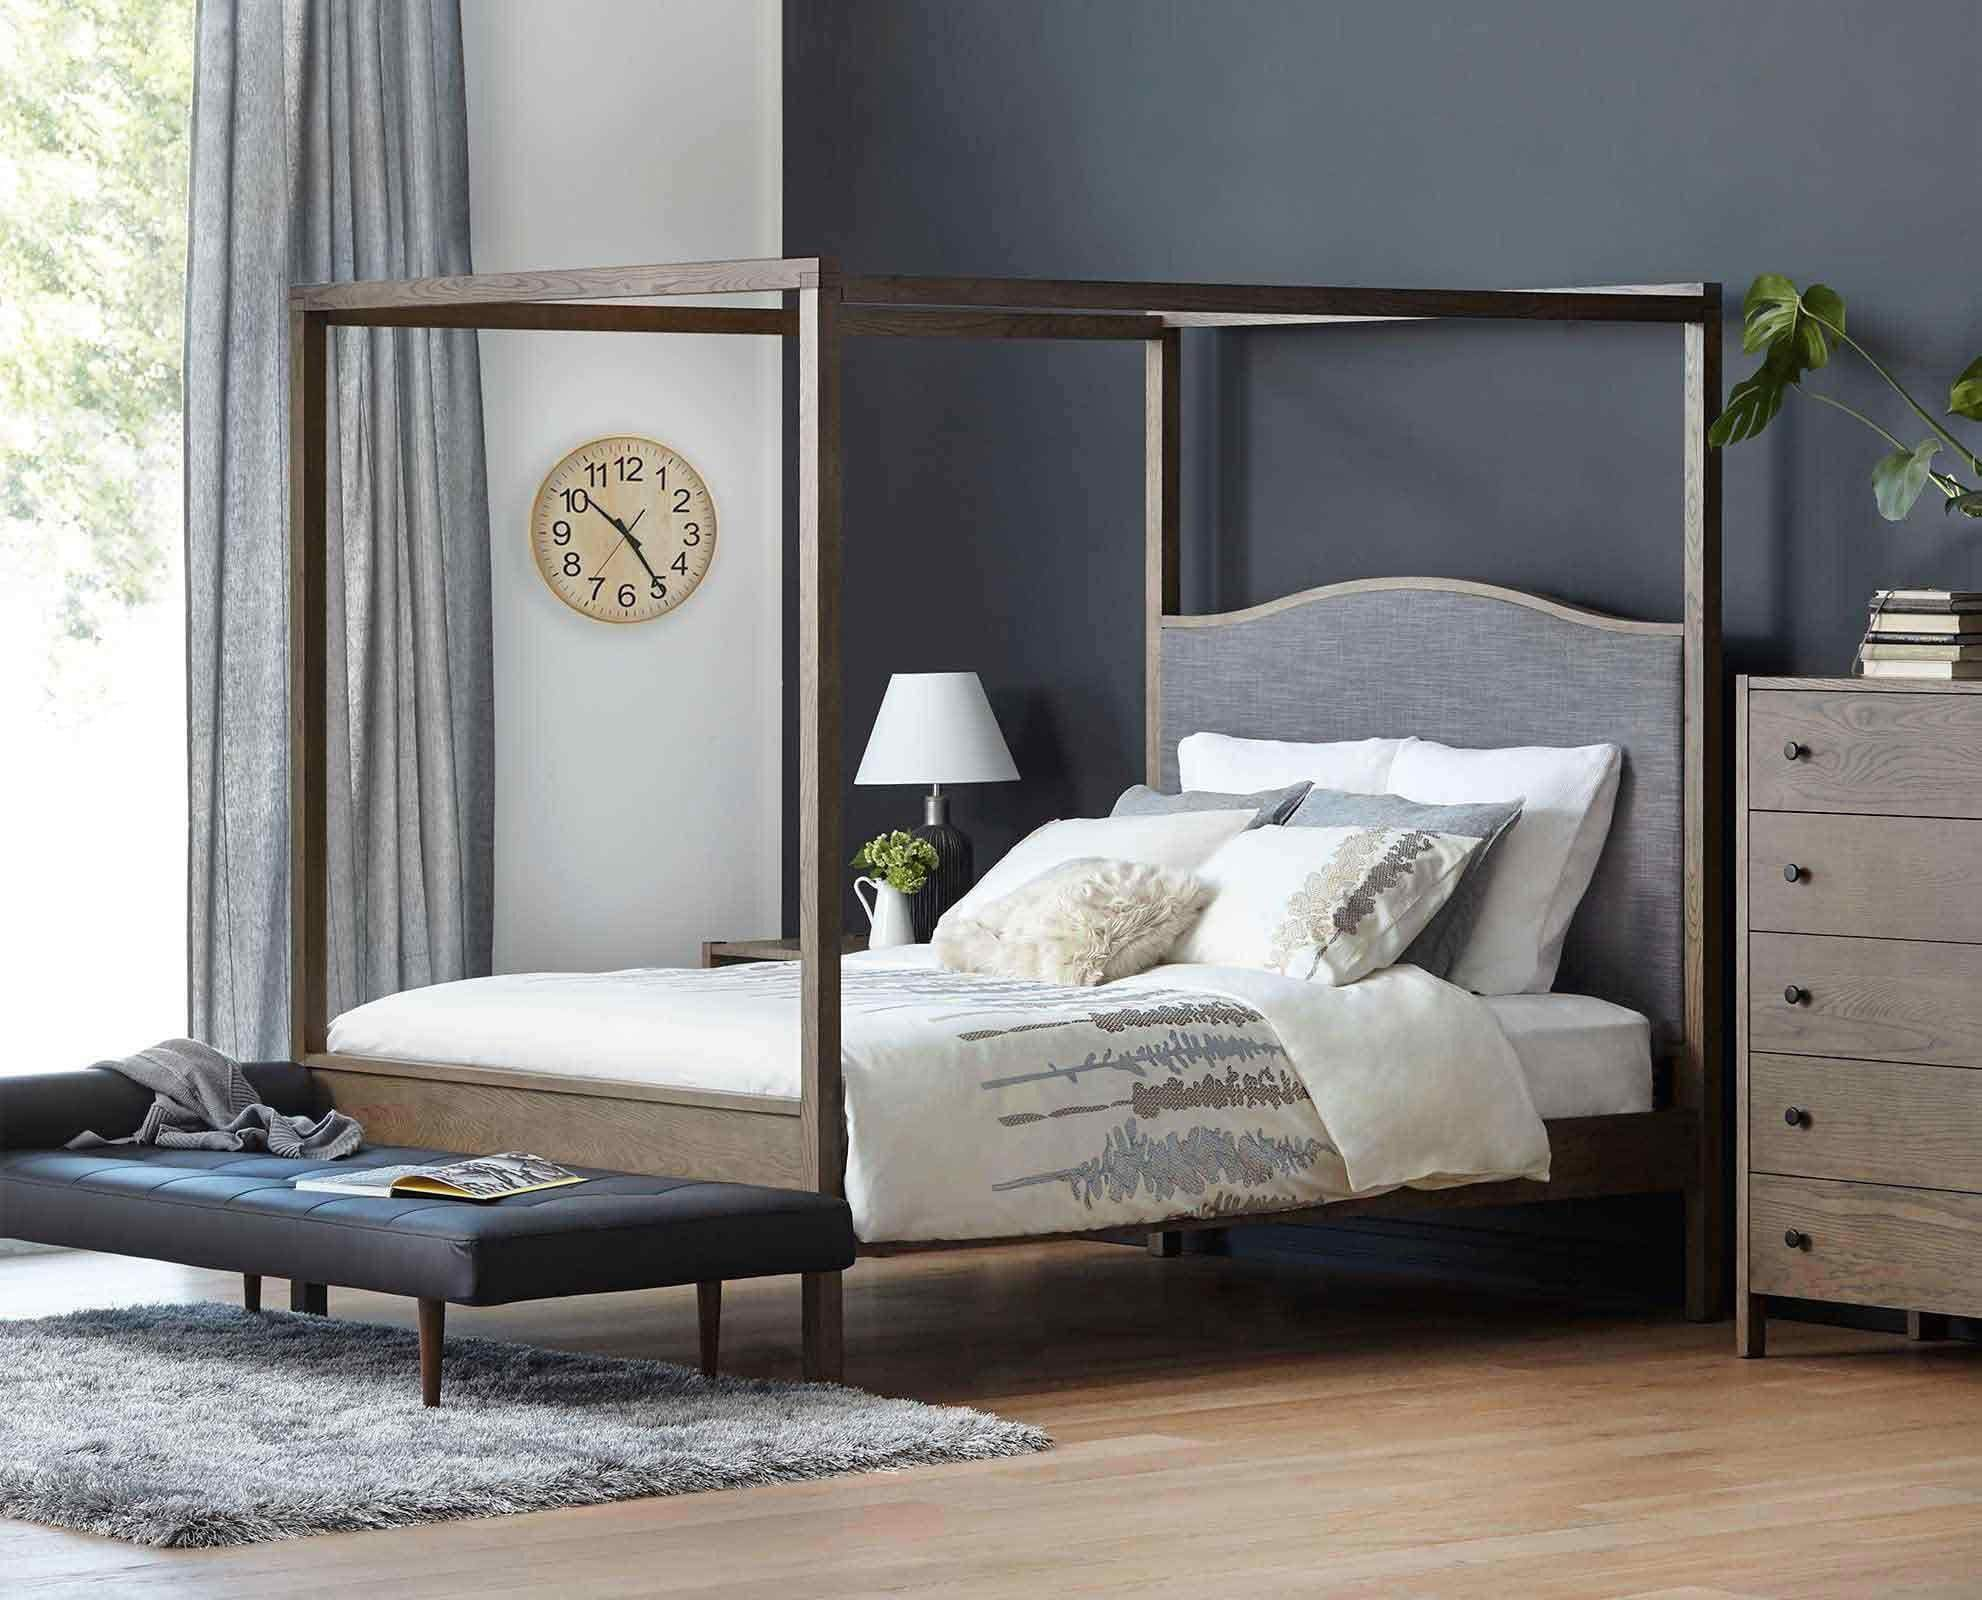 Contemporary Canopy Beds petra canopy bed – scandis